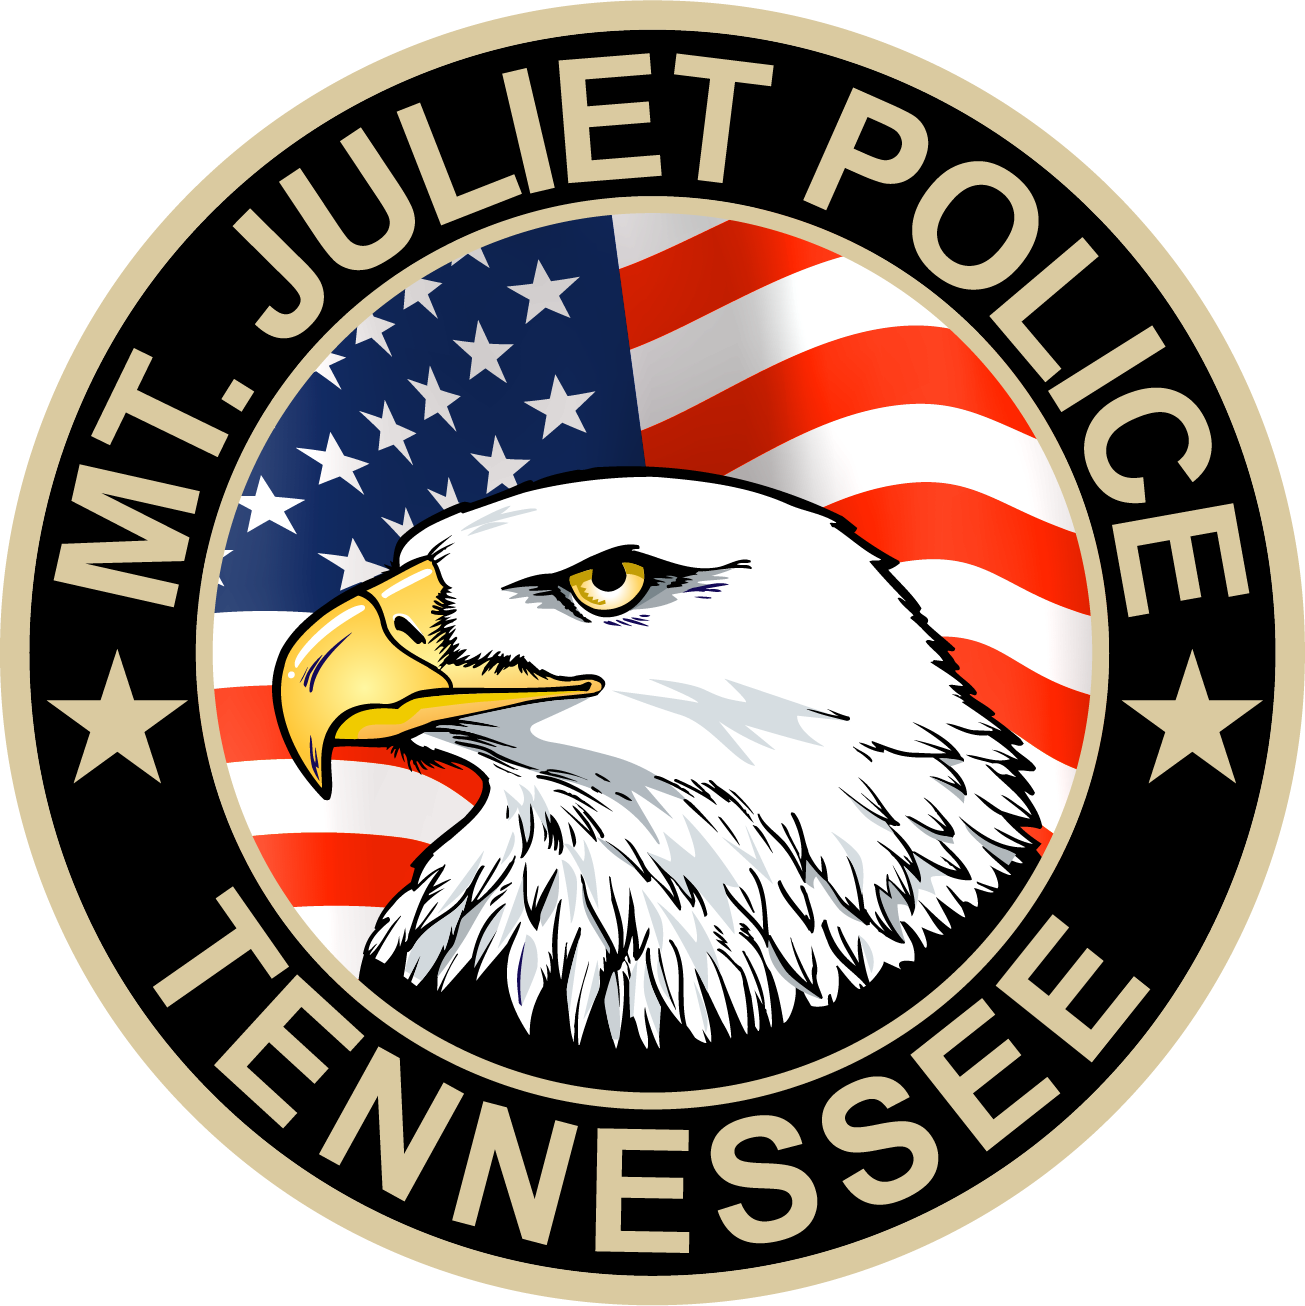 Mt. Juliet Police Department